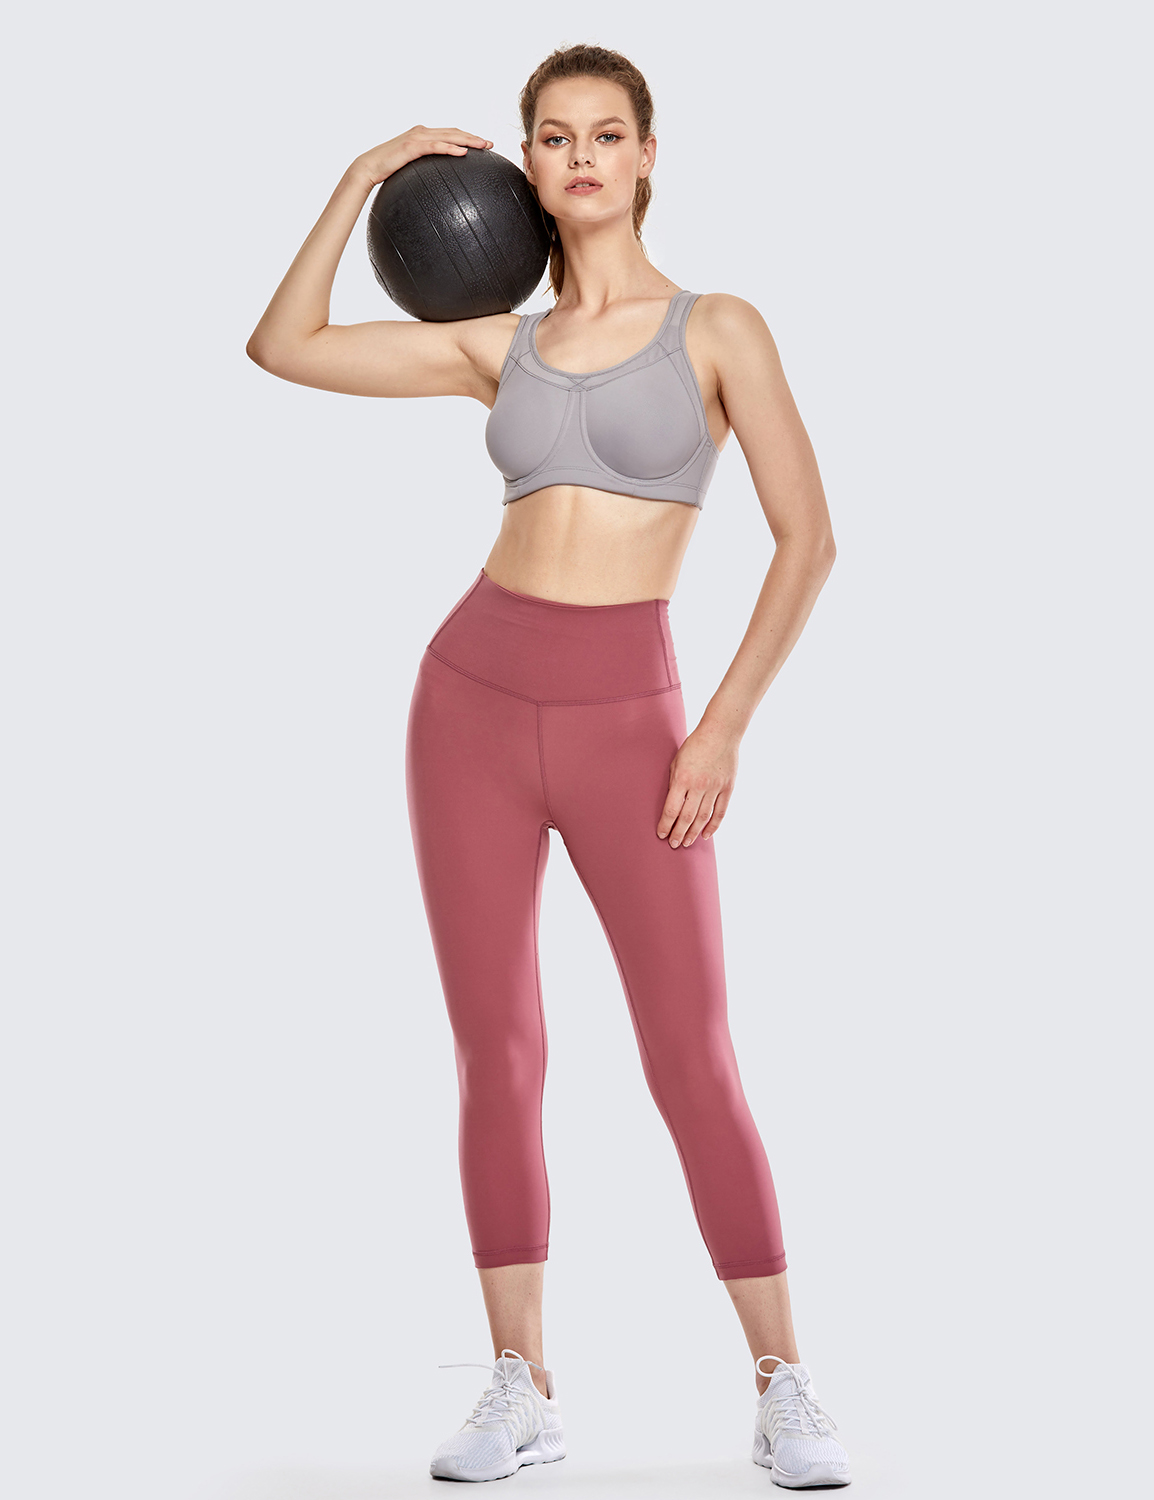 Women-039-s-High-Impact-Full-Coverage-Bounce-Control-Plus-Size-Workout-Sports-Bra thumbnail 24